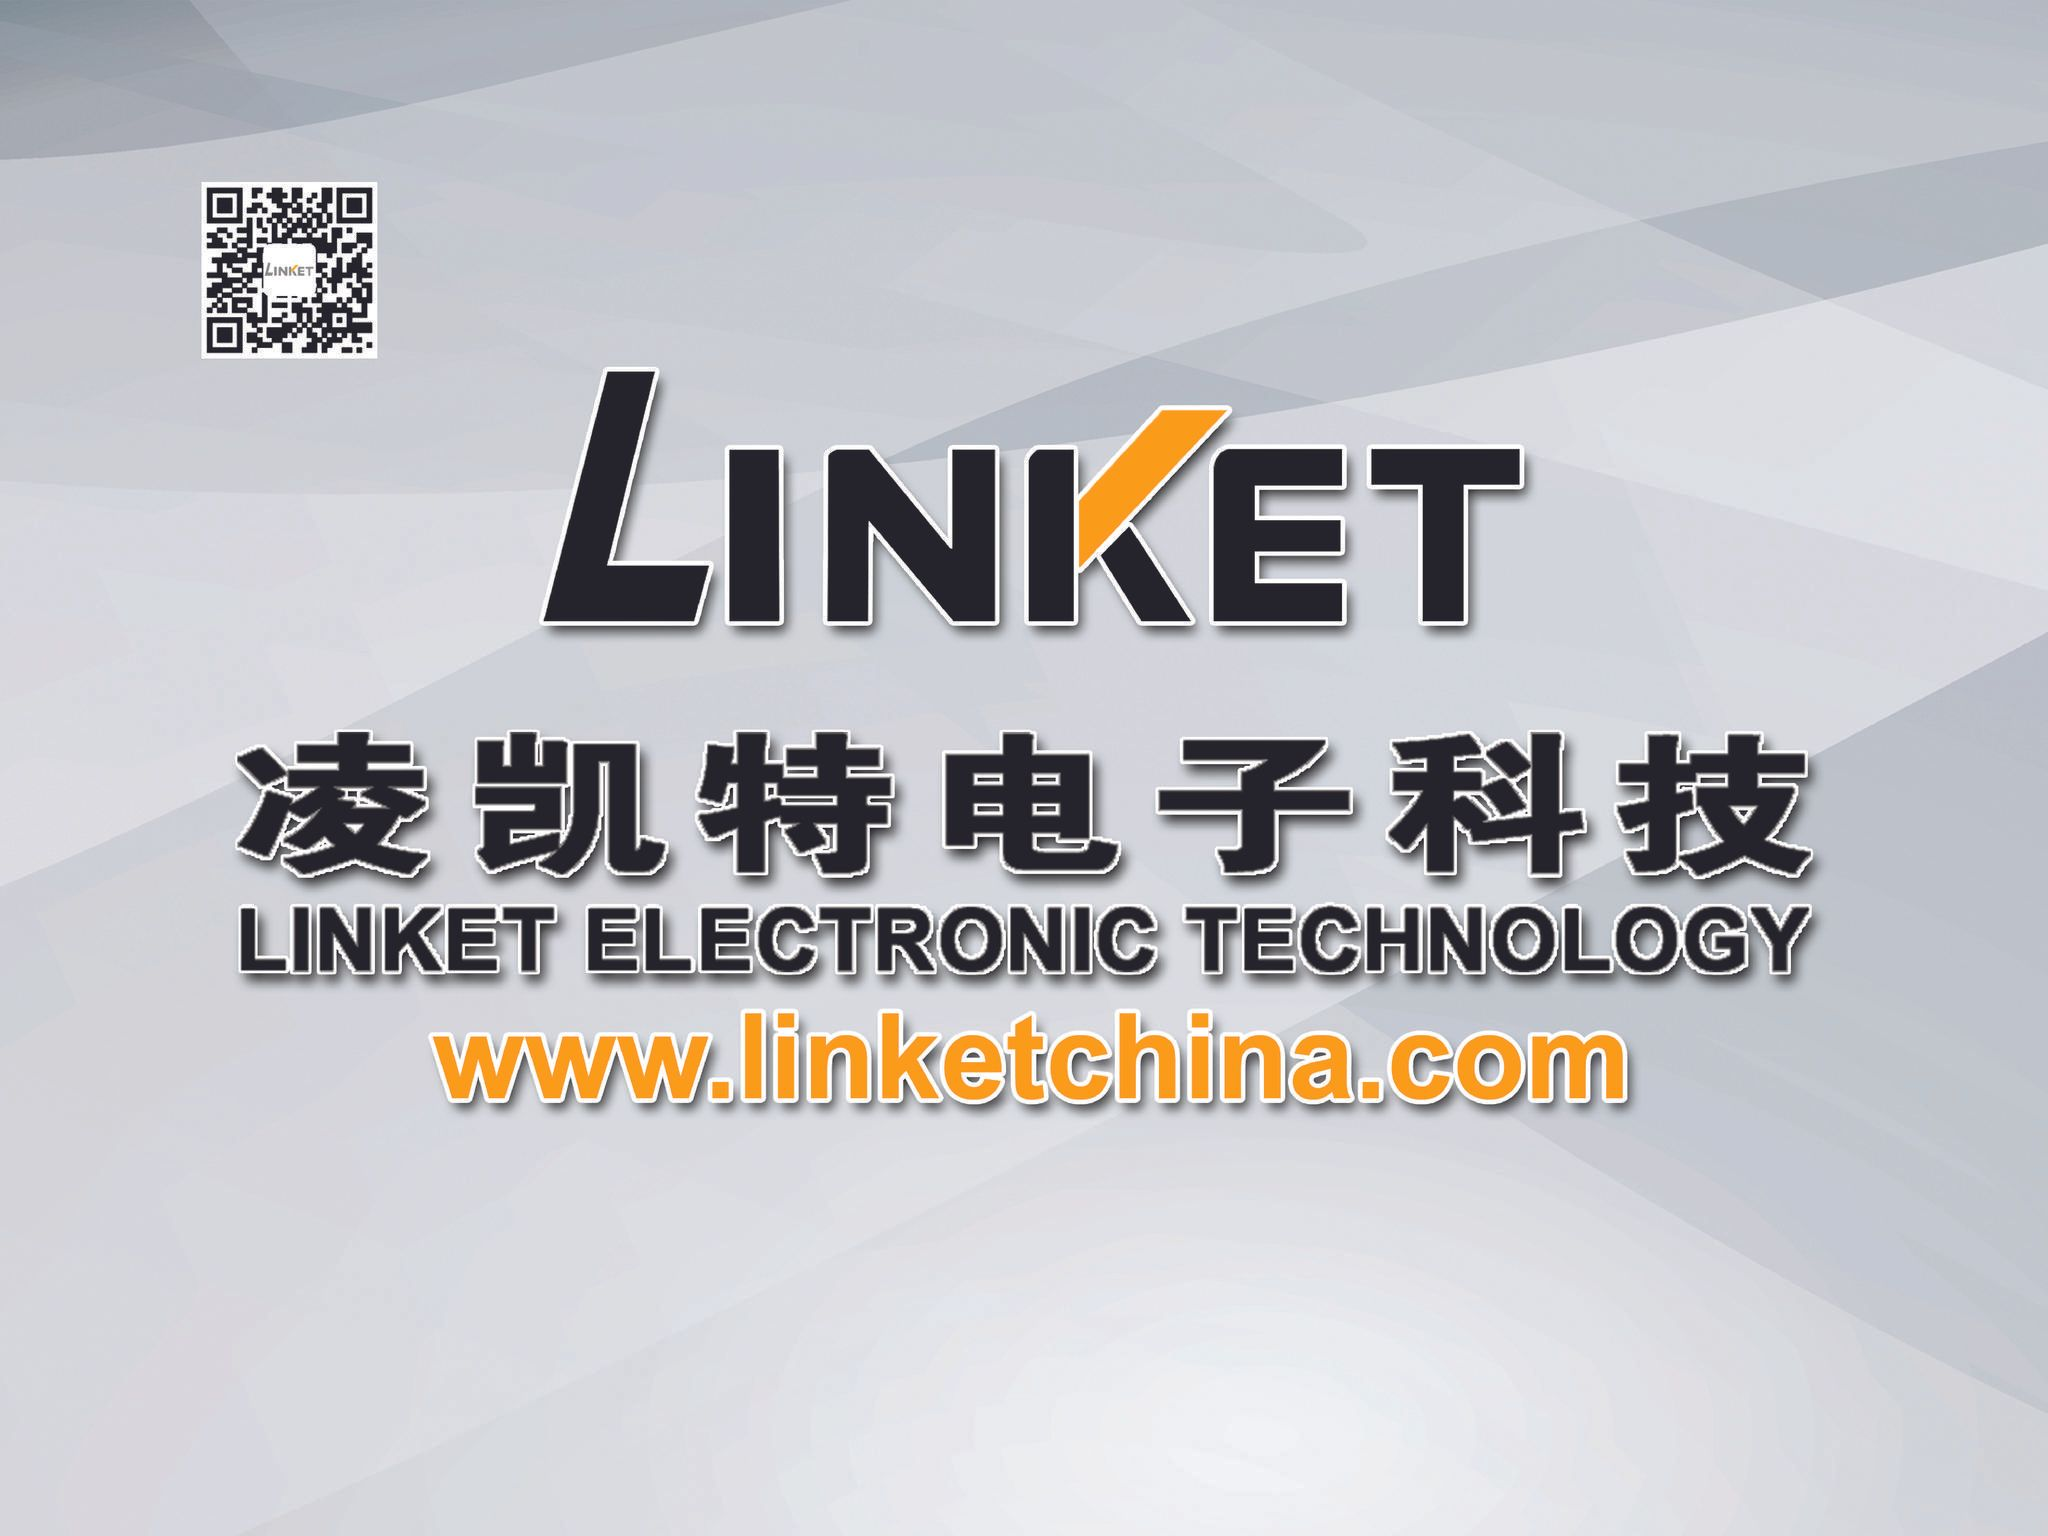 Changzhou LINKET Electronic Technology Co., Ltd